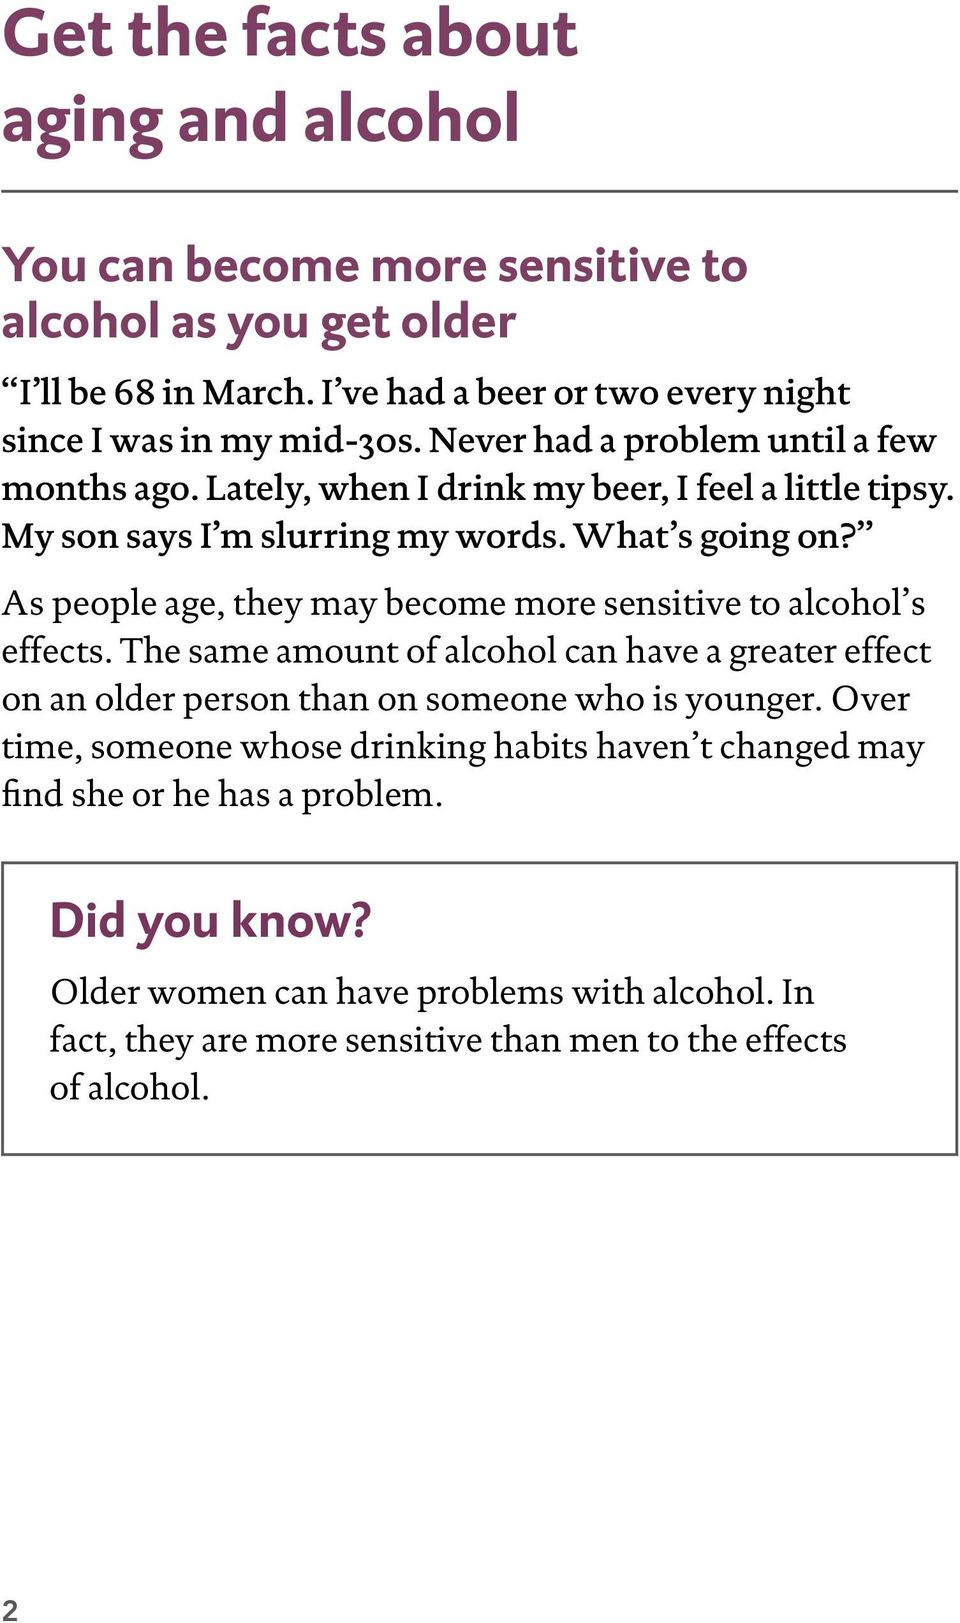 As people age, they may become more sensitive to alcohol s effects. The same amount of alcohol can have a greater effect on an older person than on someone who is younger.